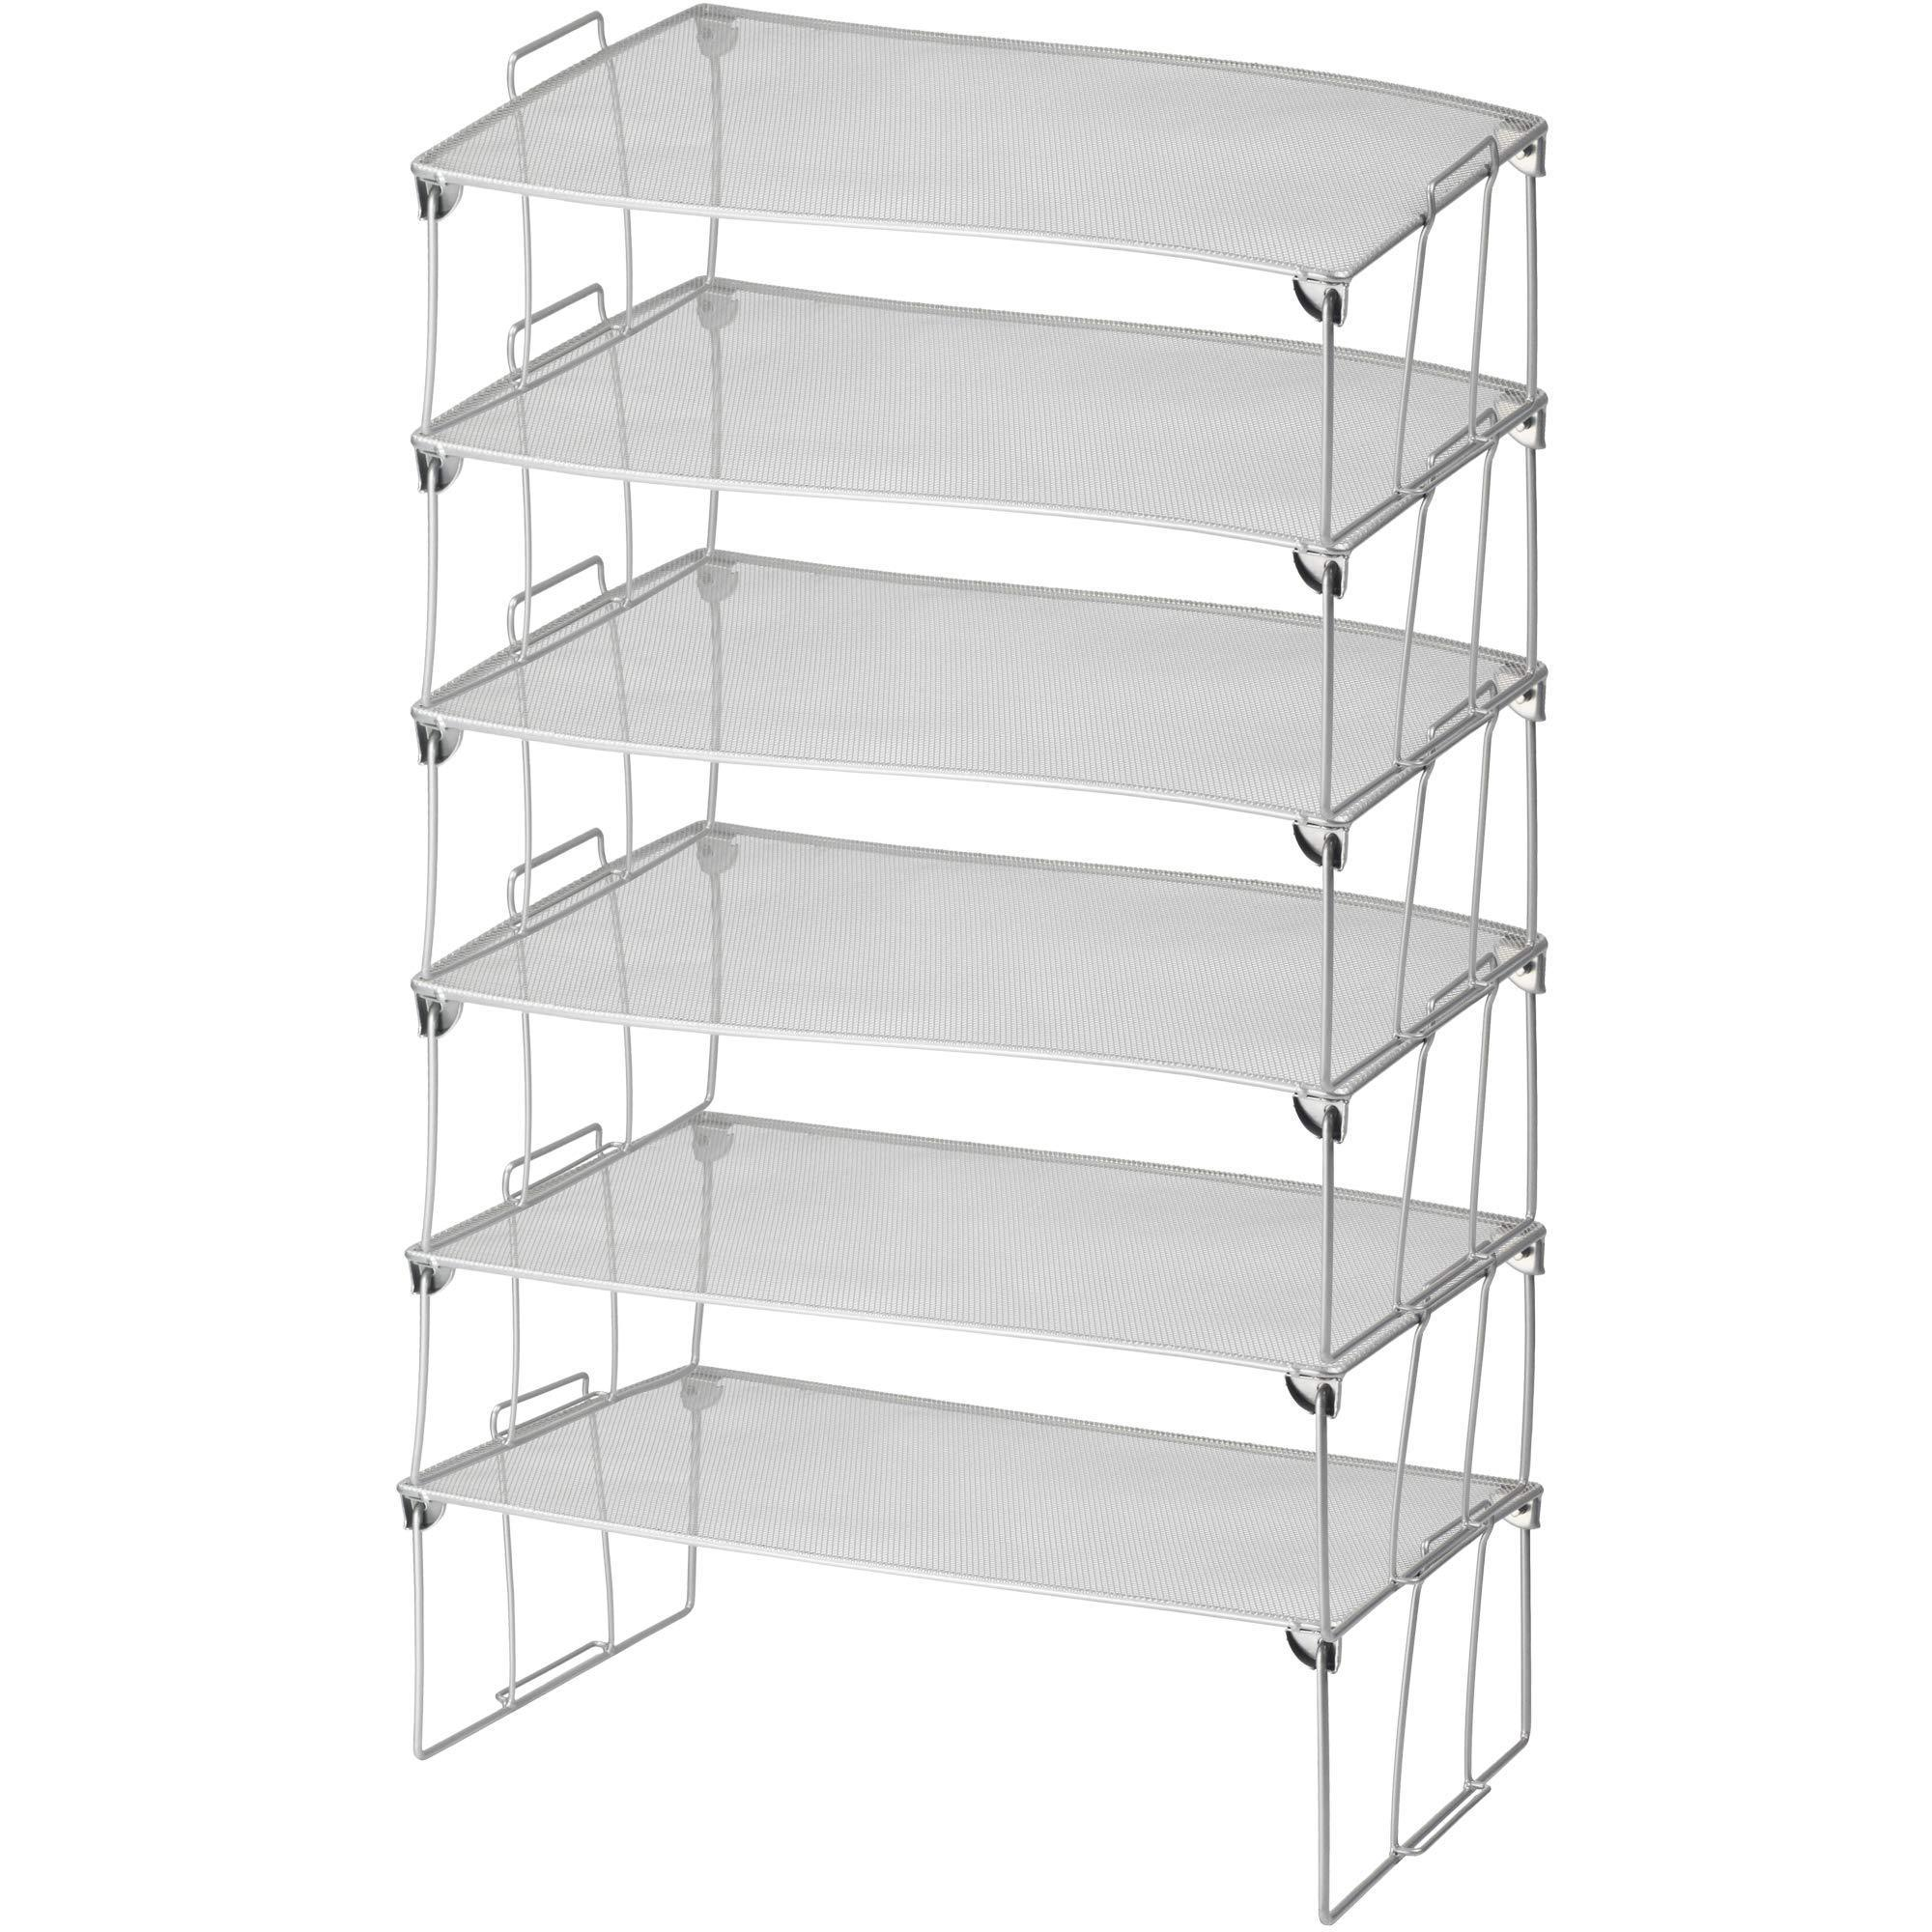 Best ybm home stainless steel stackable mesh shelf silver multipurpose storage rack for kitchen bathroom garage office durable wire pantry organizer foldable space saving design 2257 6 6 large